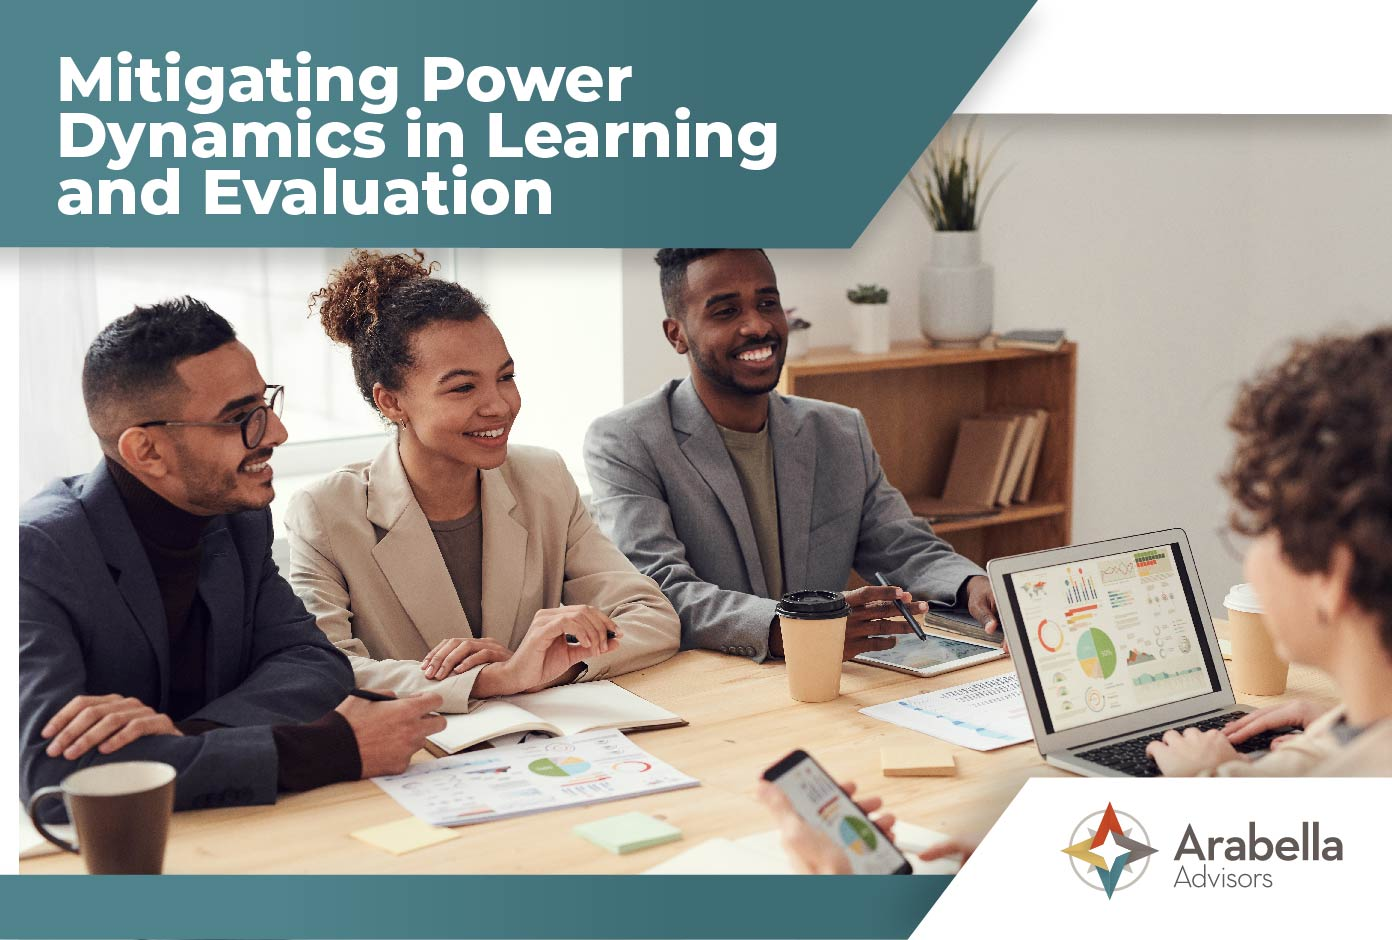 Mitigating Power Dynamics in Learning and Evaluation